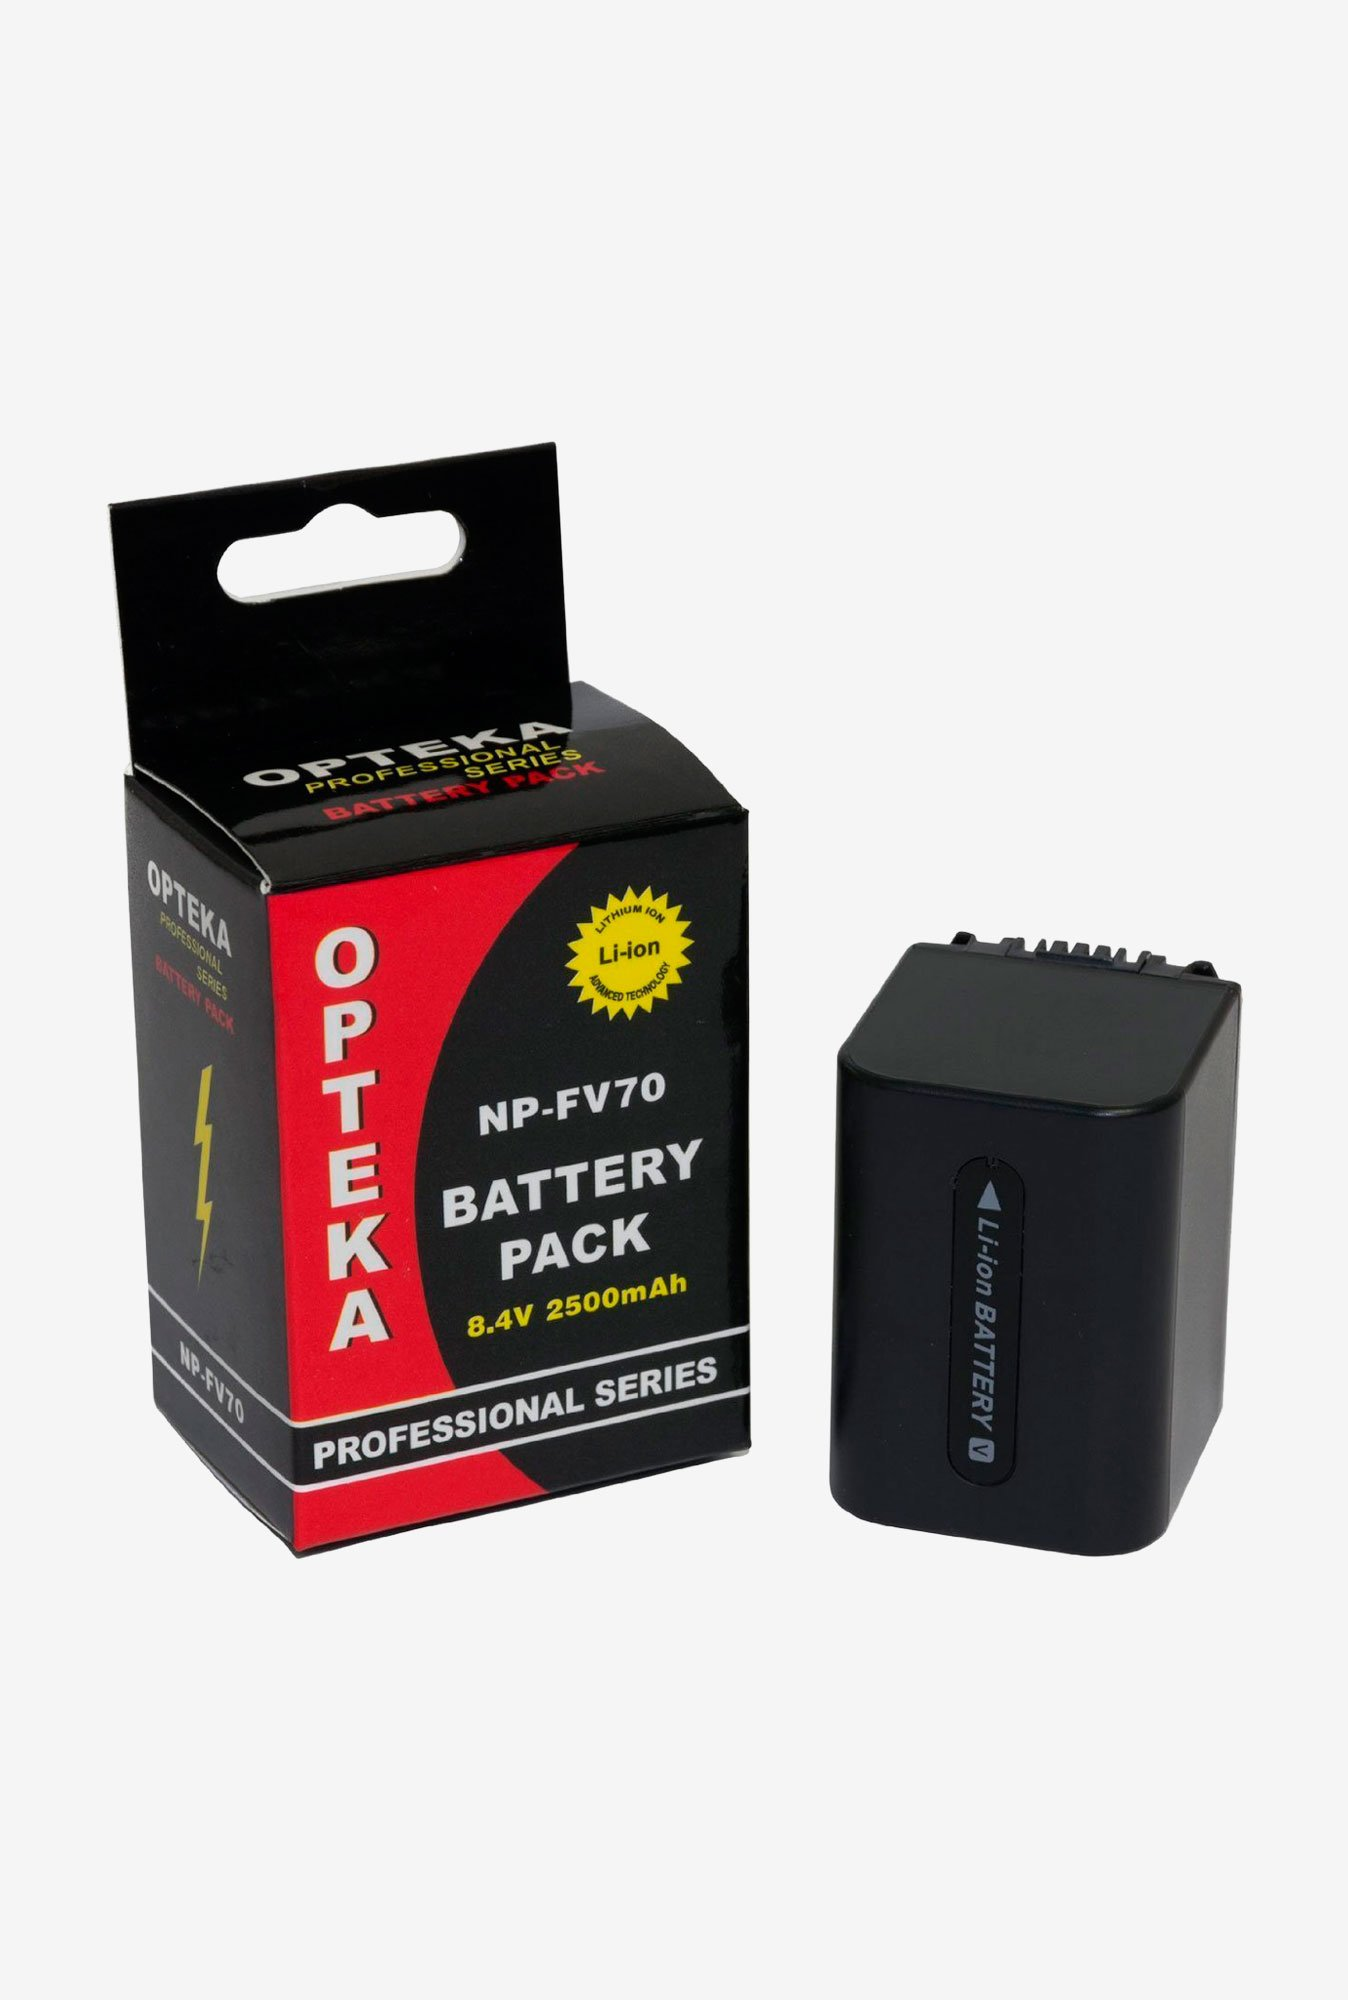 Opteka Np-Fv70 2500Mah Ultra High Capacity Li-Ion Battery Pack For Sony Handycam Camcorders